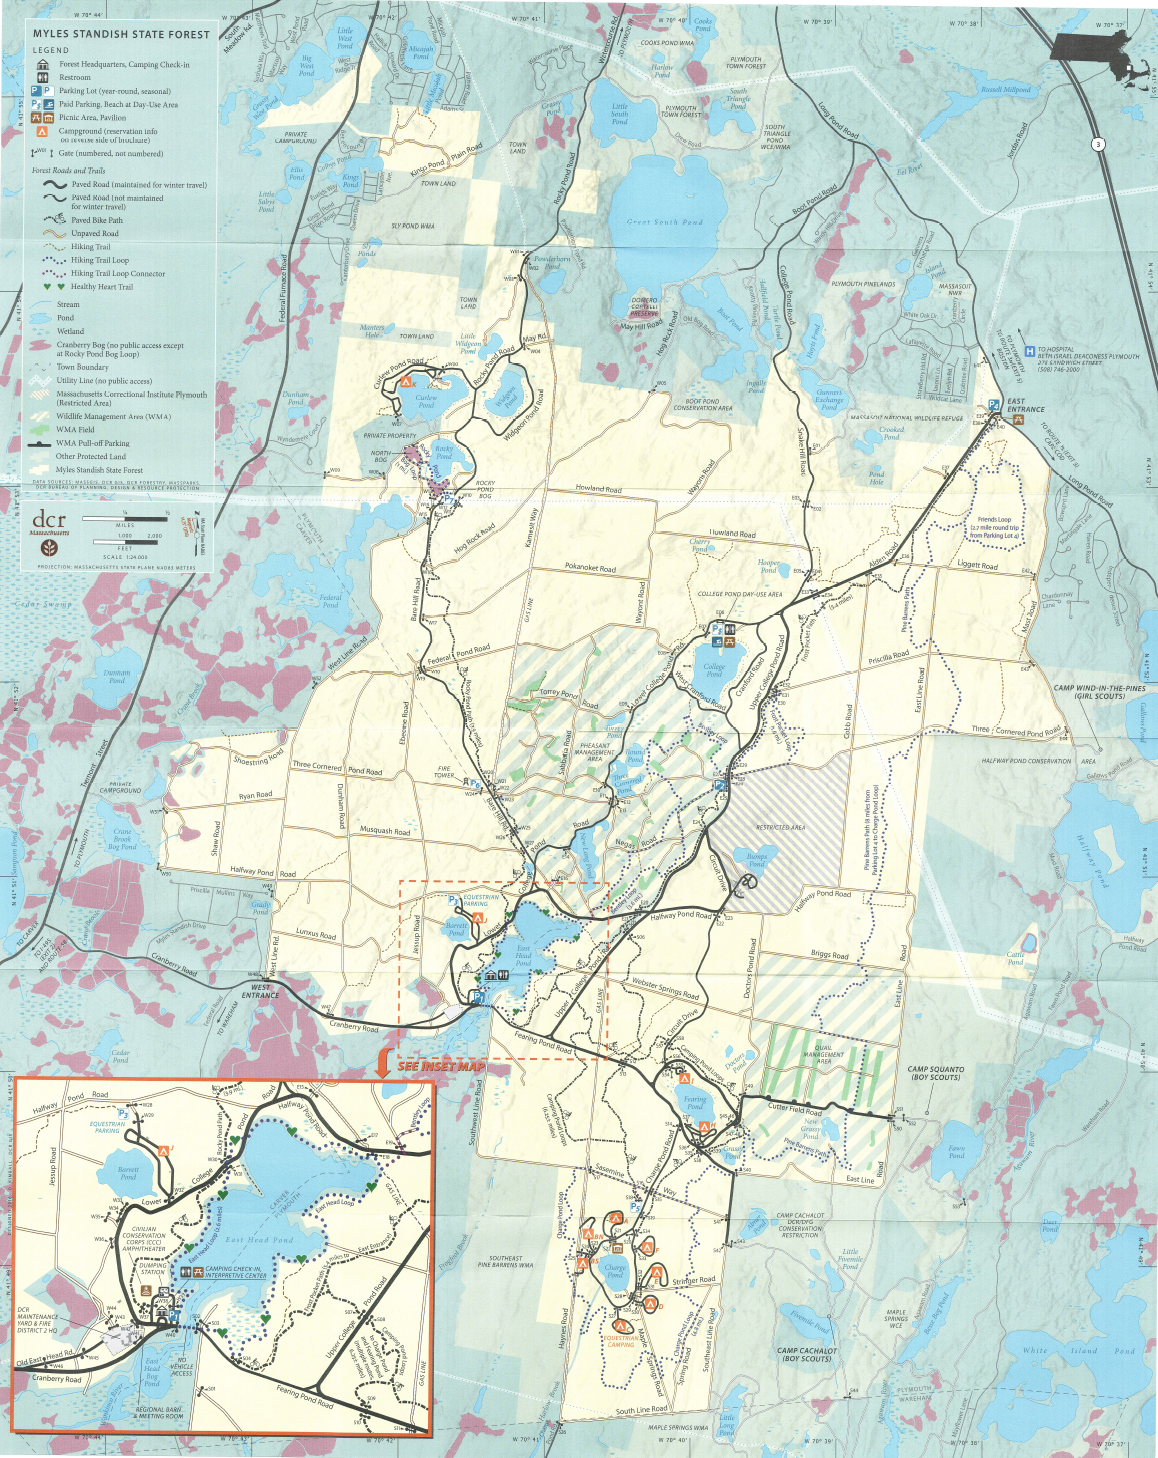 Hiking trails in Myles Standish State Forest